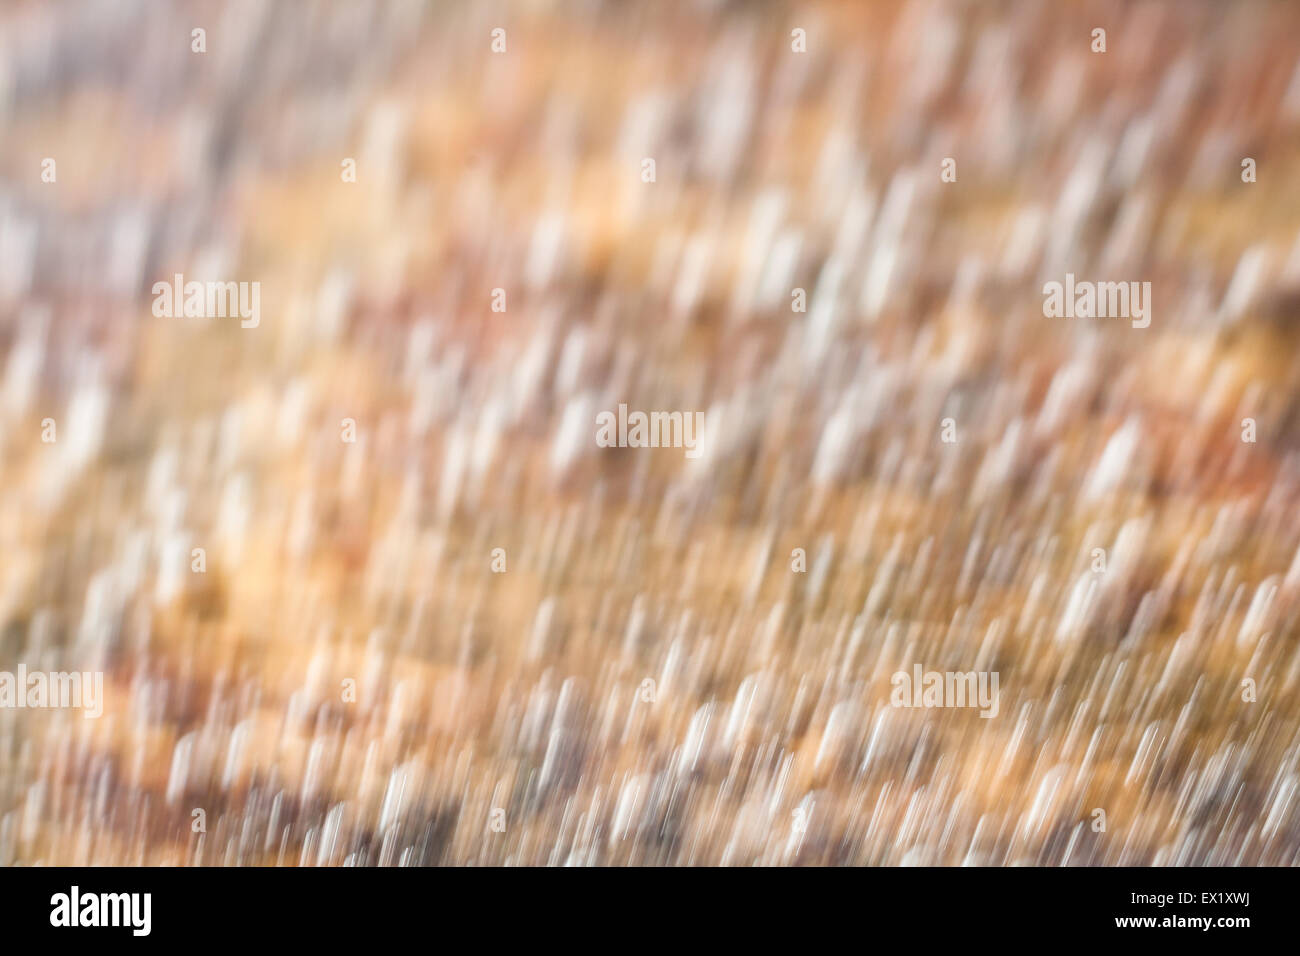 bubbles water wood. Close up image of a sparkling water thrown on a wooden table,  texture, background - Stock Image